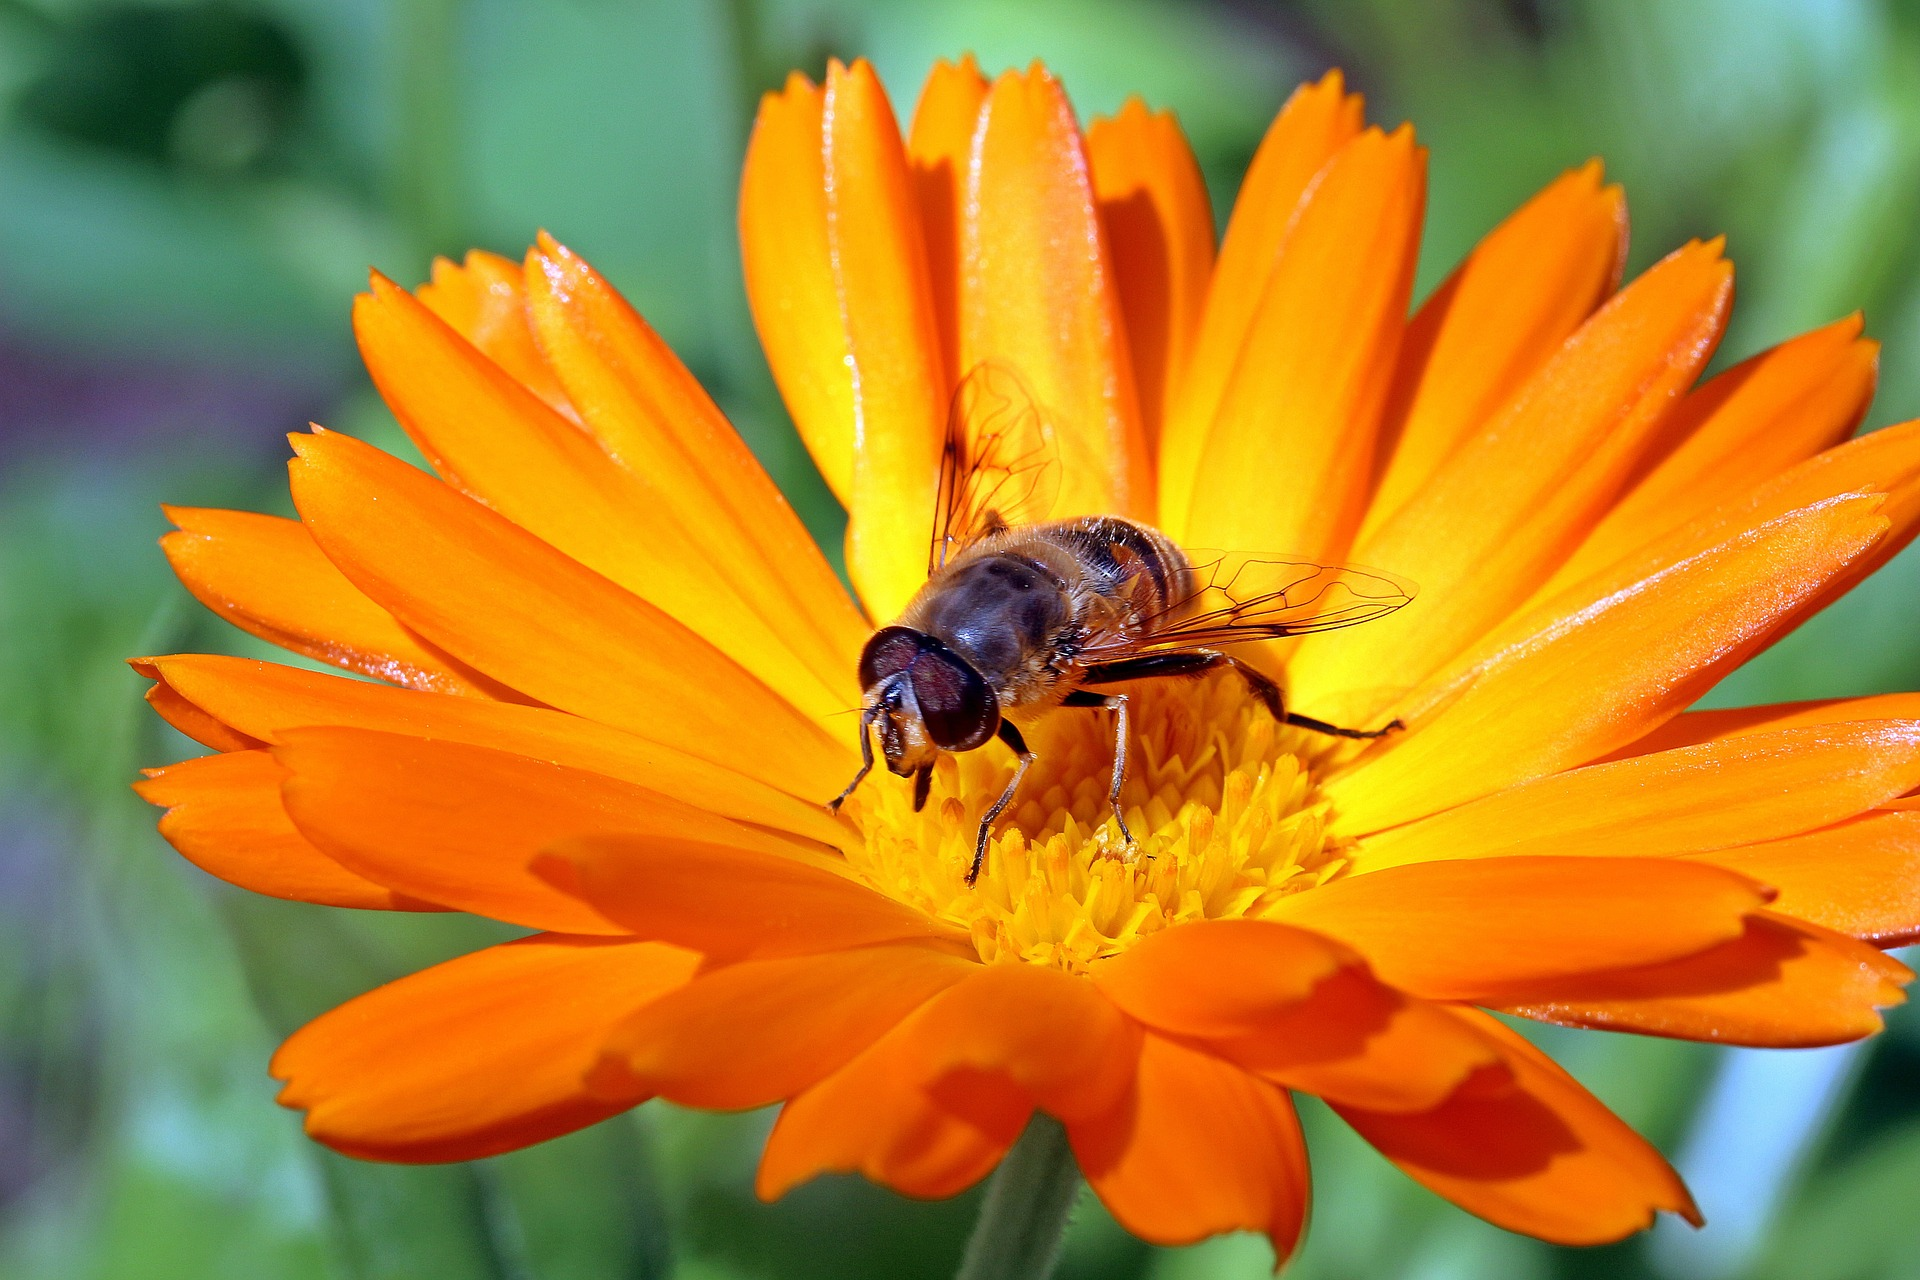 Fly on  marigold, Animal, Blooming, Flower, Fly, HQ Photo